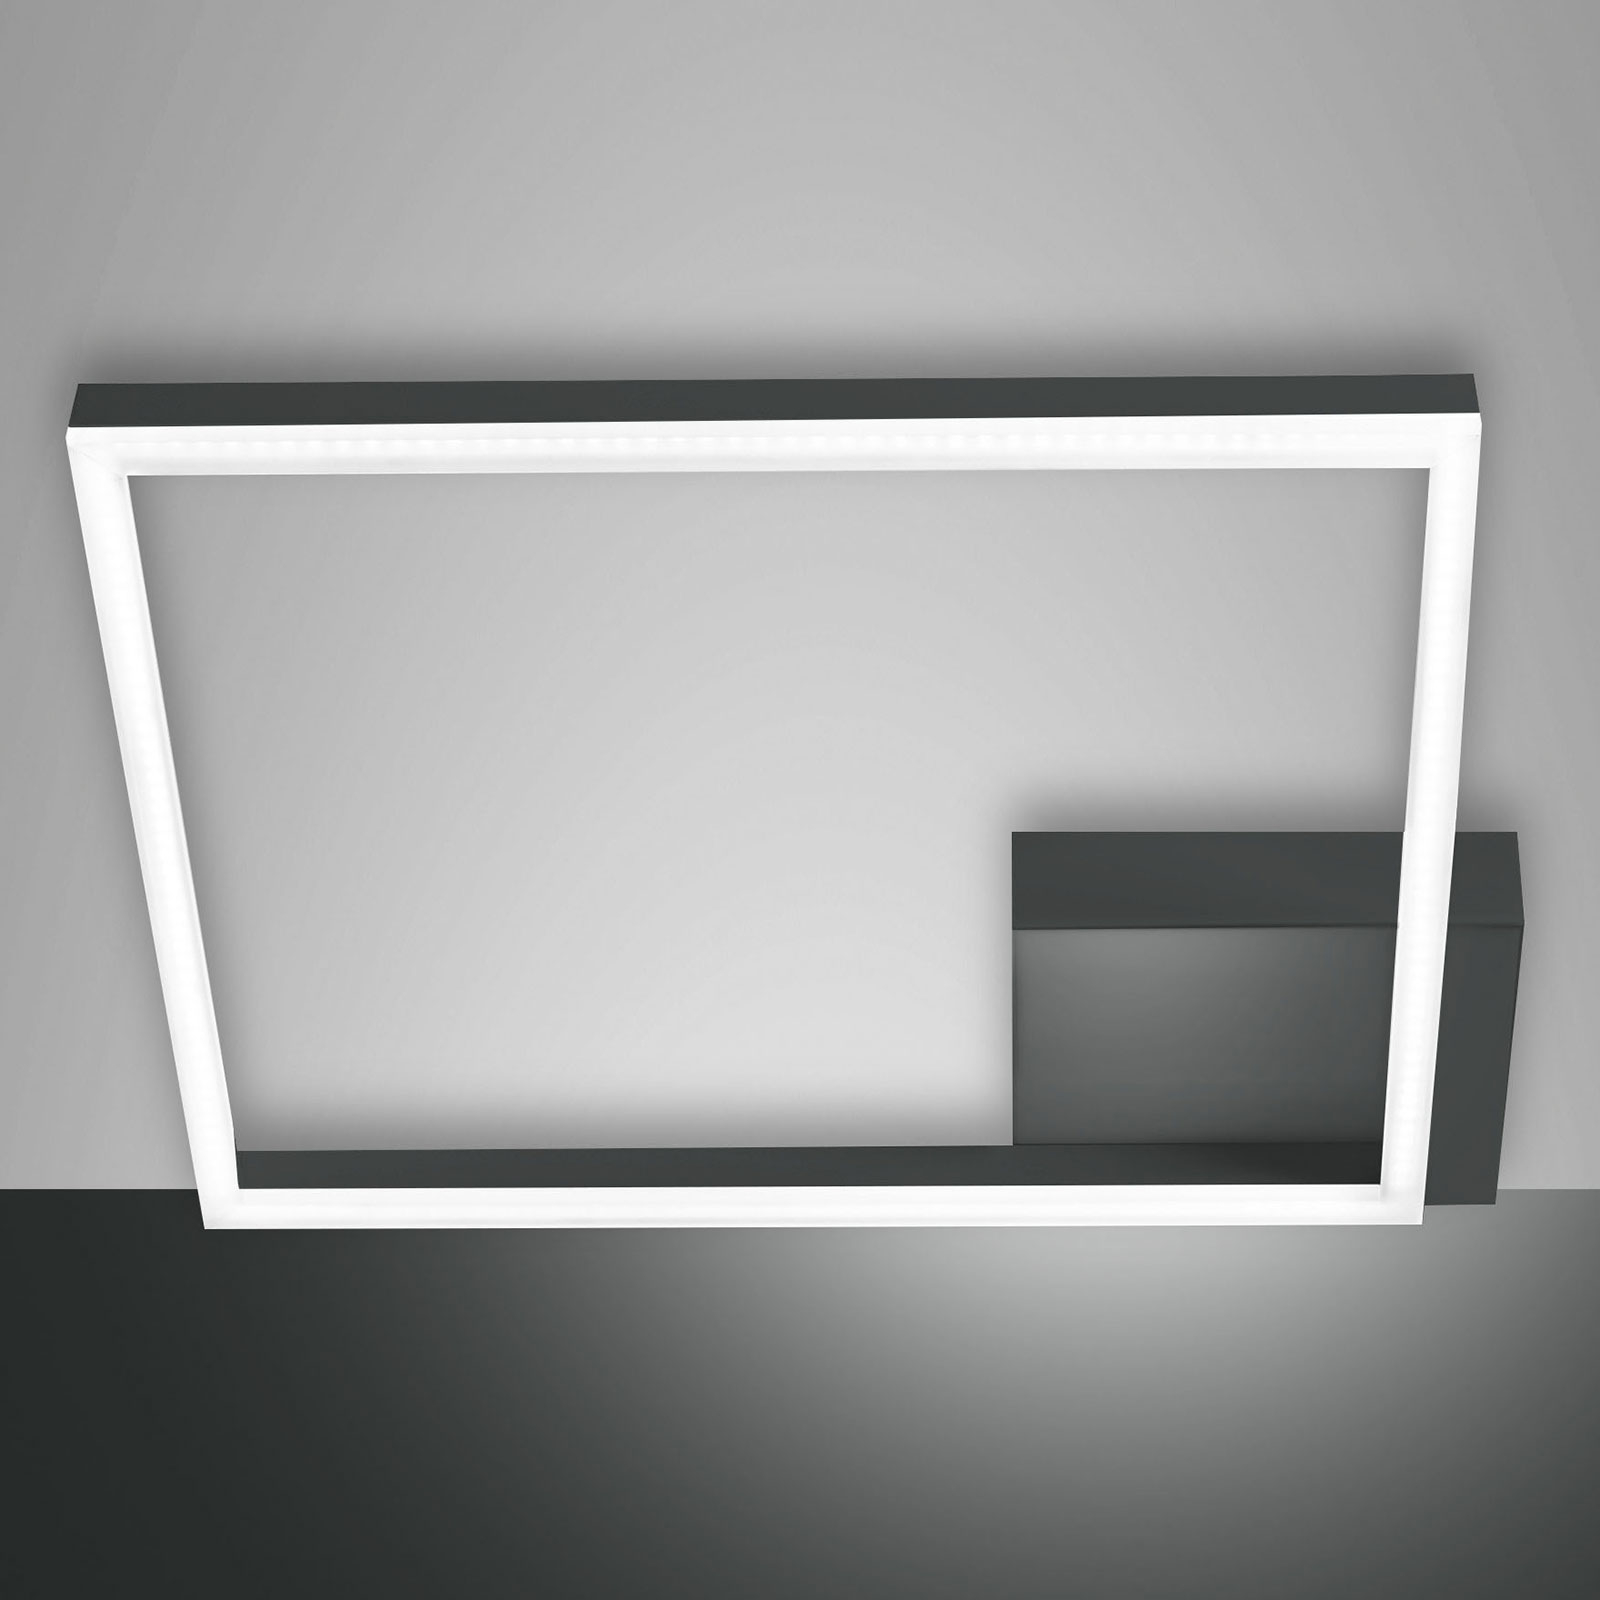 Plafonnier LED Bard, 42x42 cm, anthracite